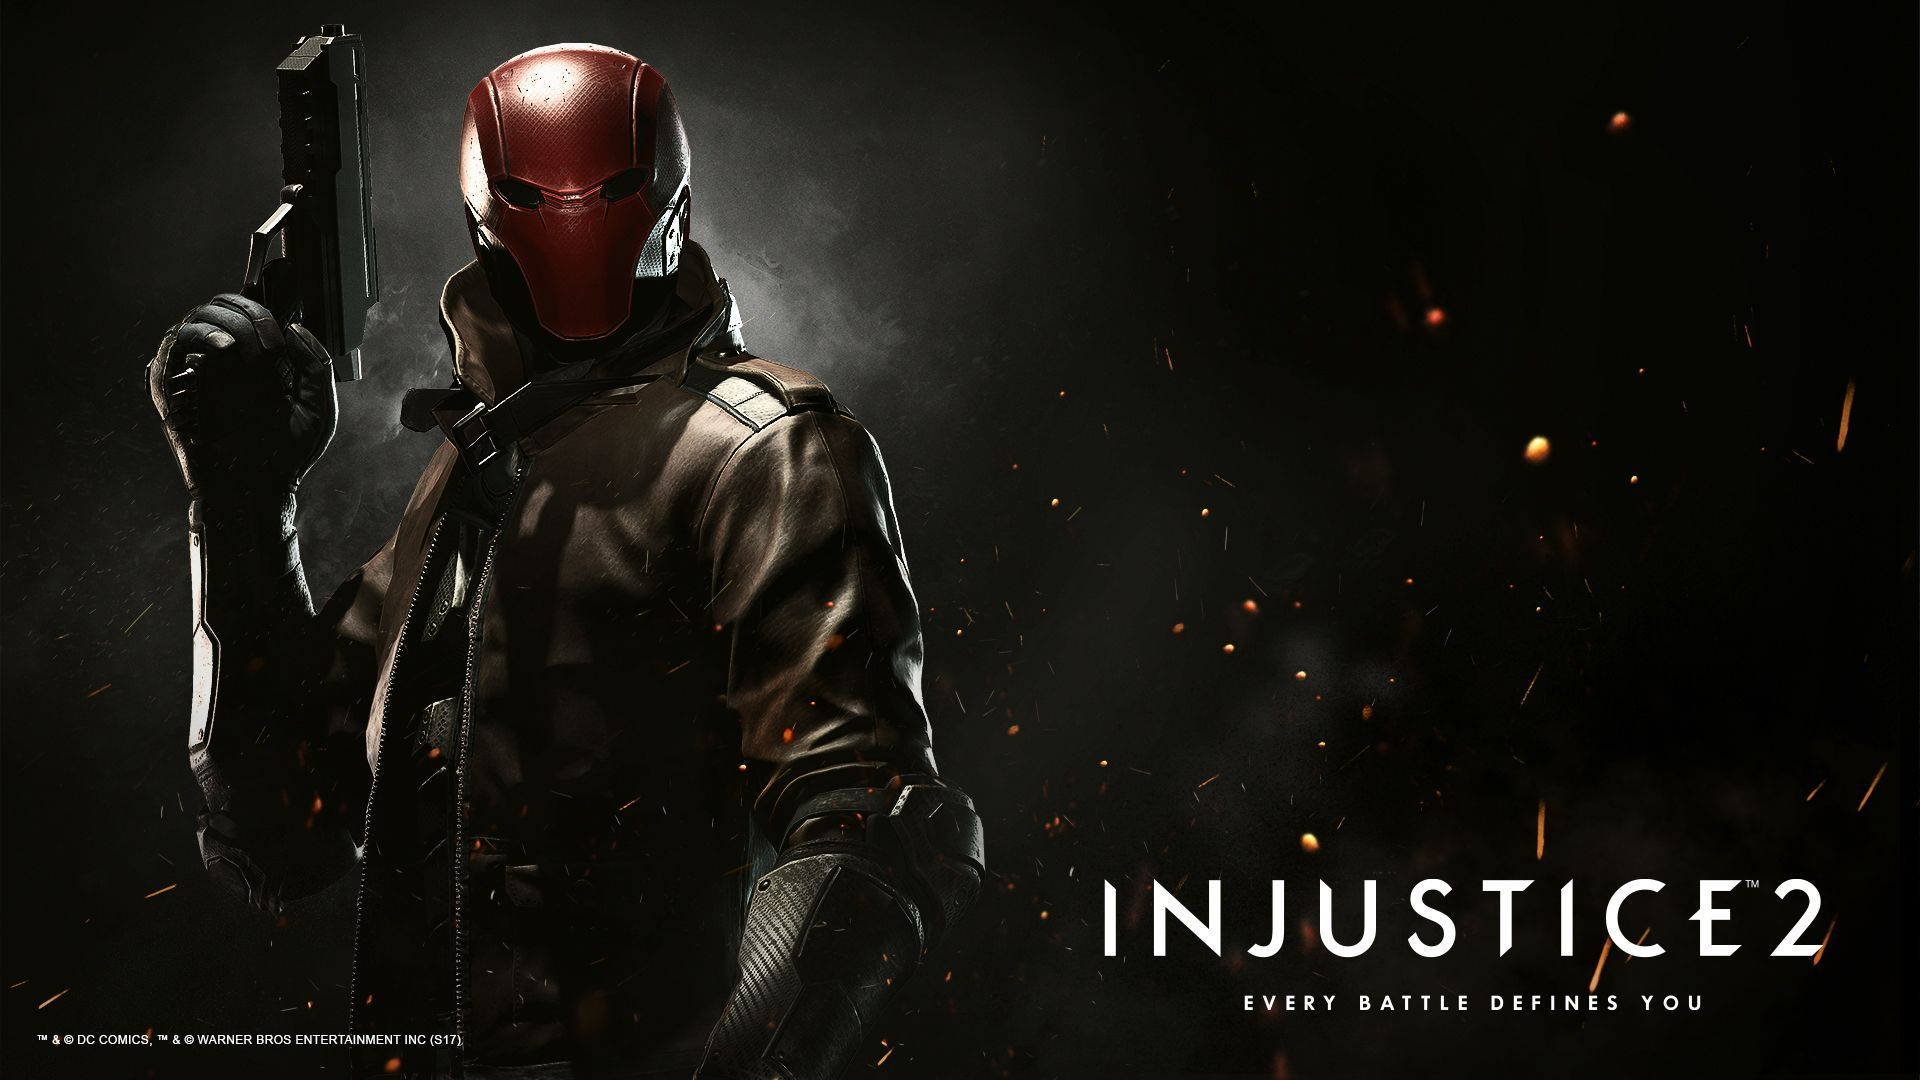 Pin By Fortex On Injustice 2 Characters Injustice 2